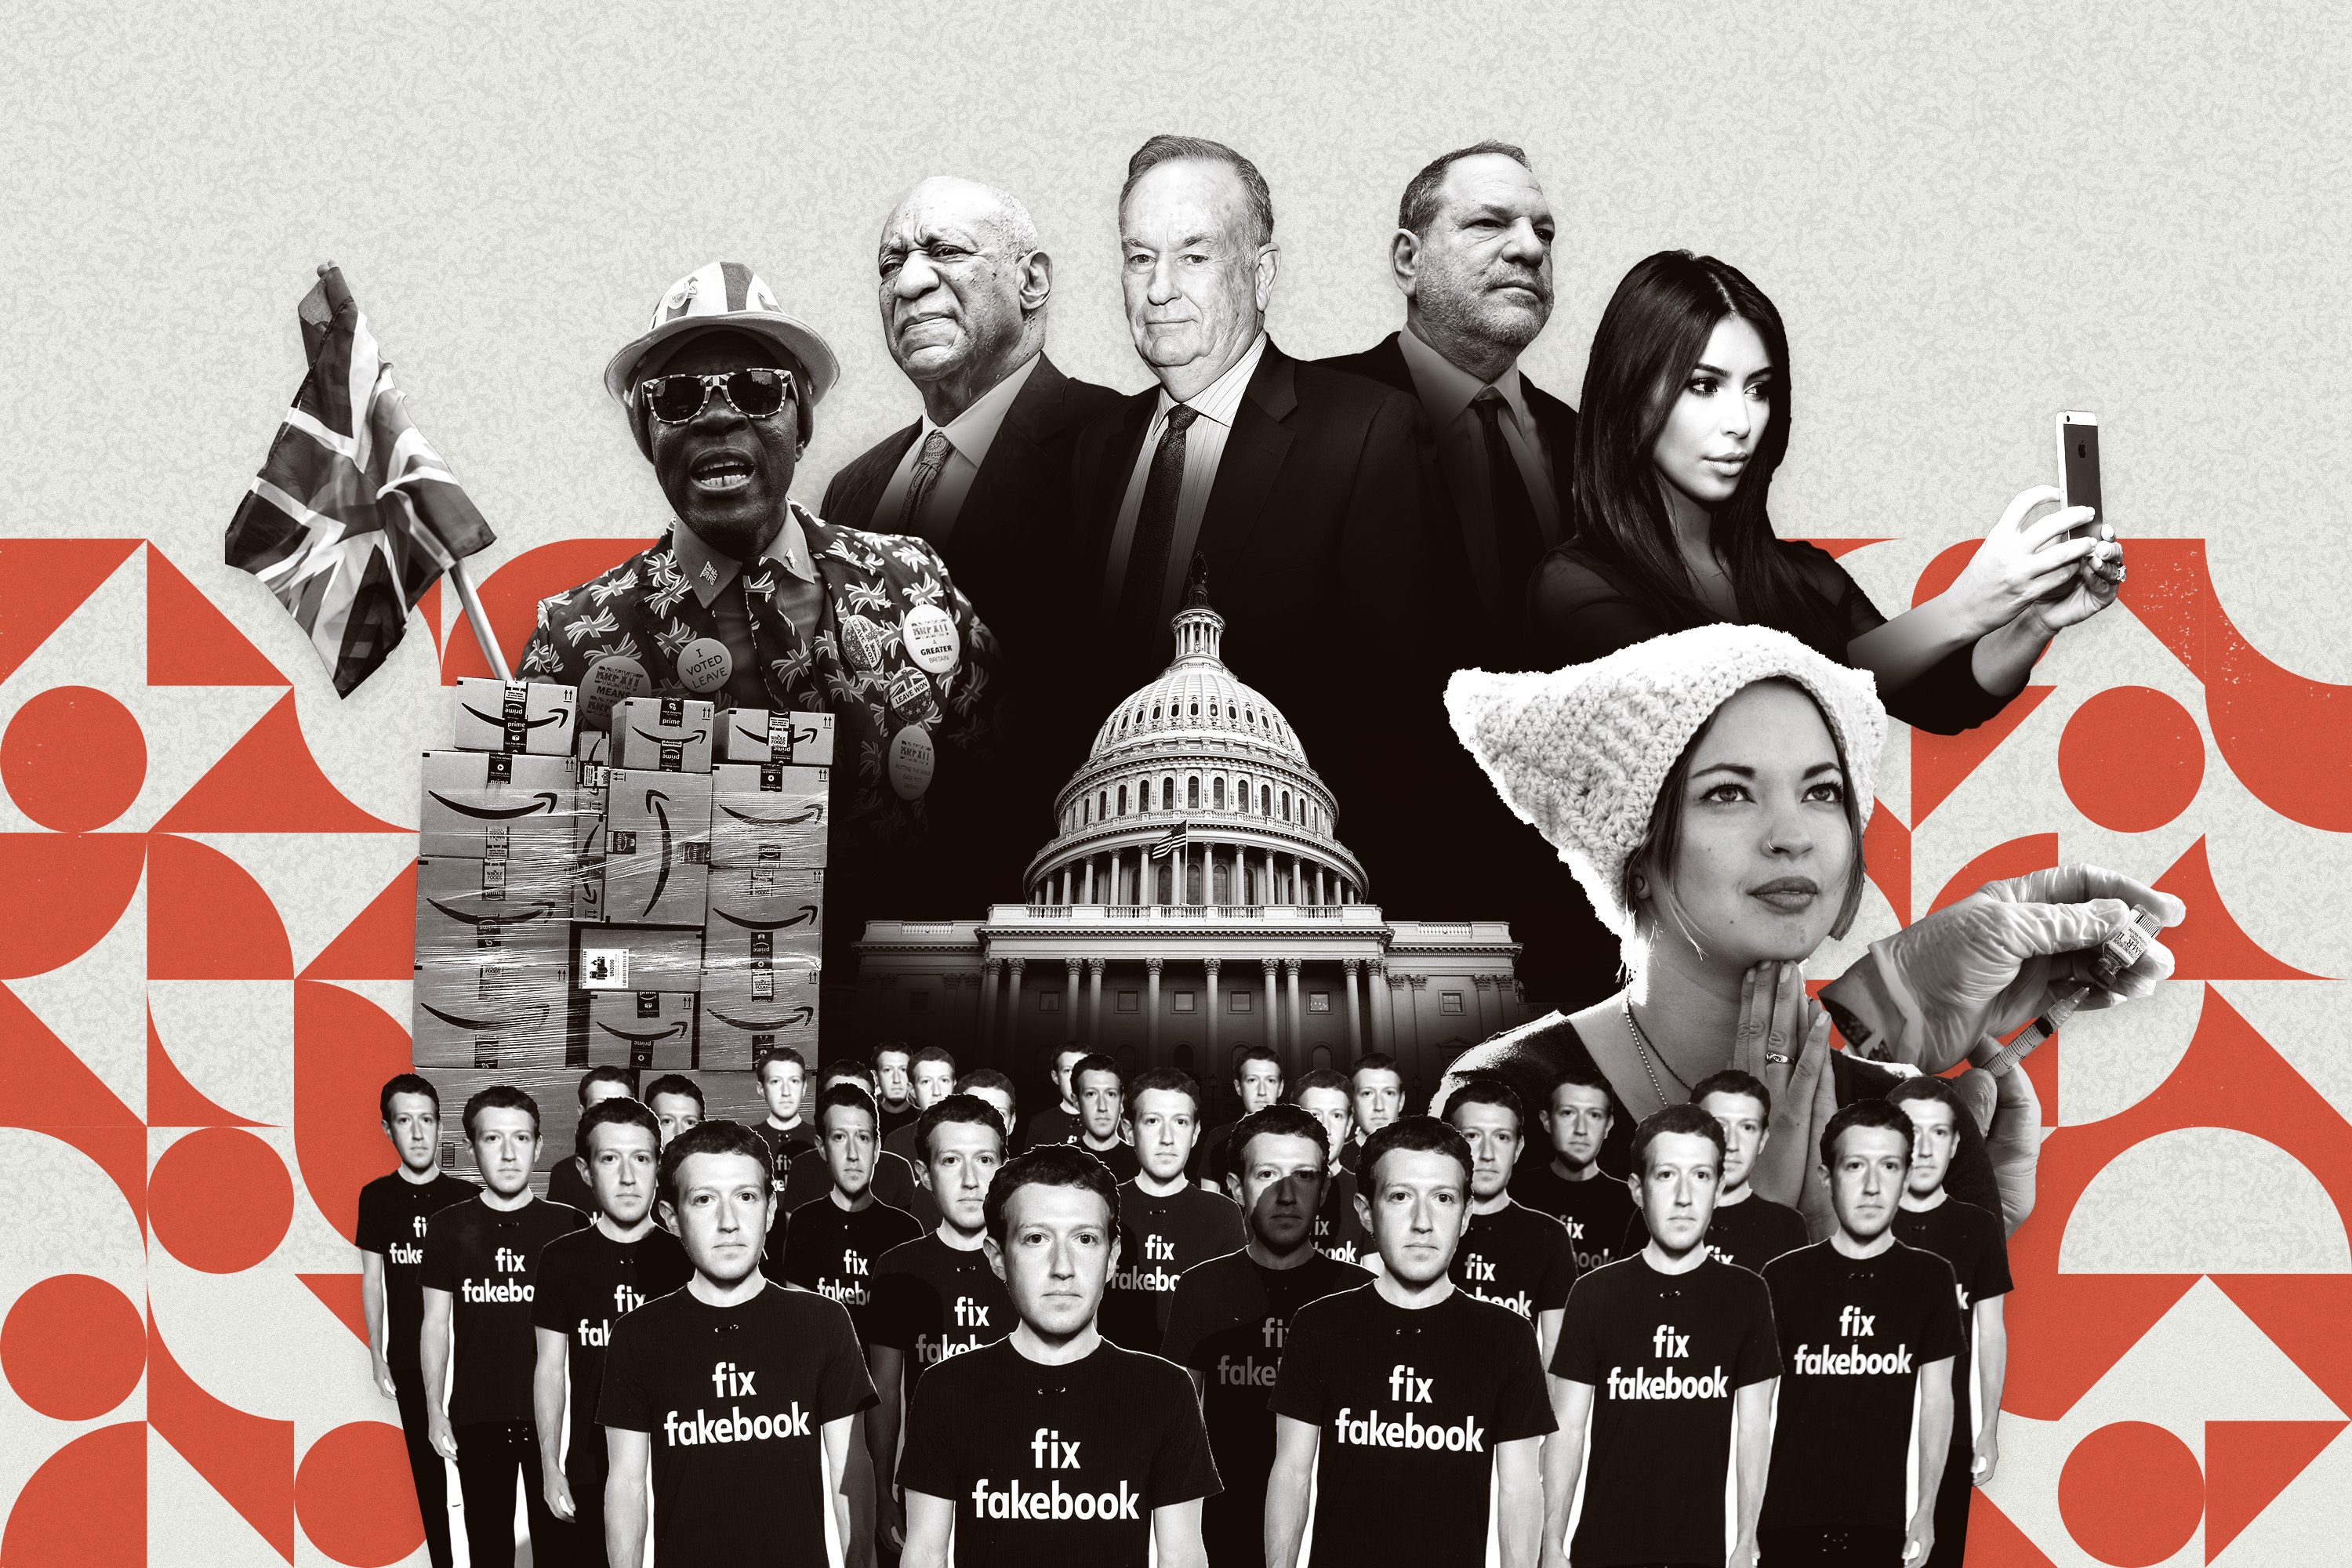 A collage of the White House, a Facebook protest, Amazon boxes, and other images from the 2010s.